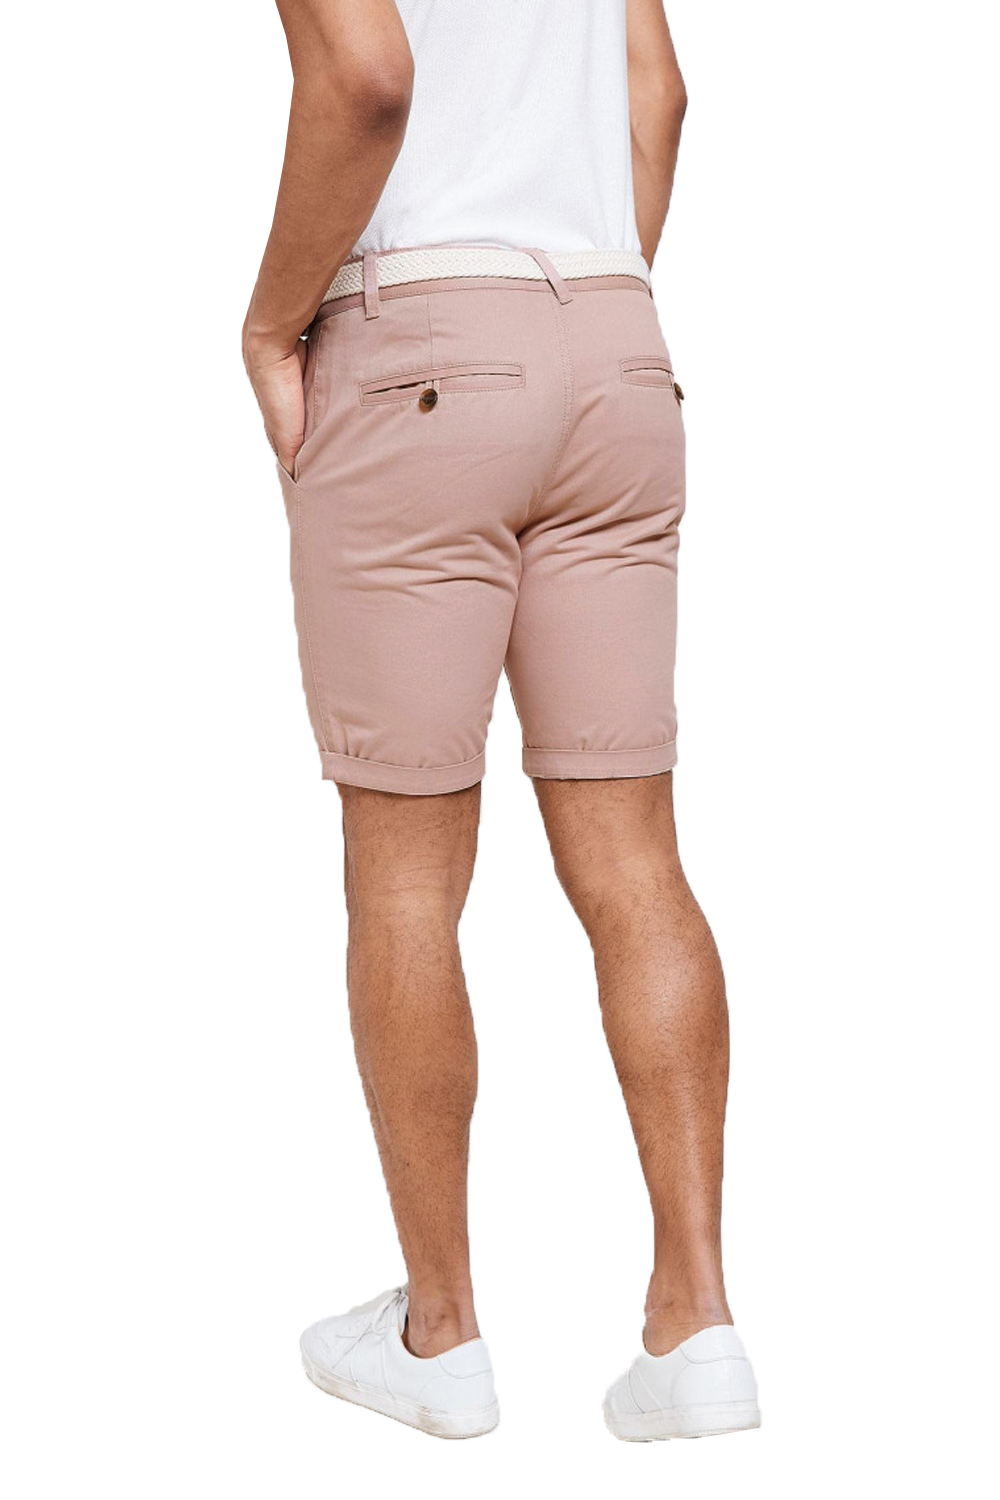 Threadbare-Mens-Slim-Fit-Belted-Chino-Shorts-Summer-Casual-Cotton-Smart-Bottoms thumbnail 17